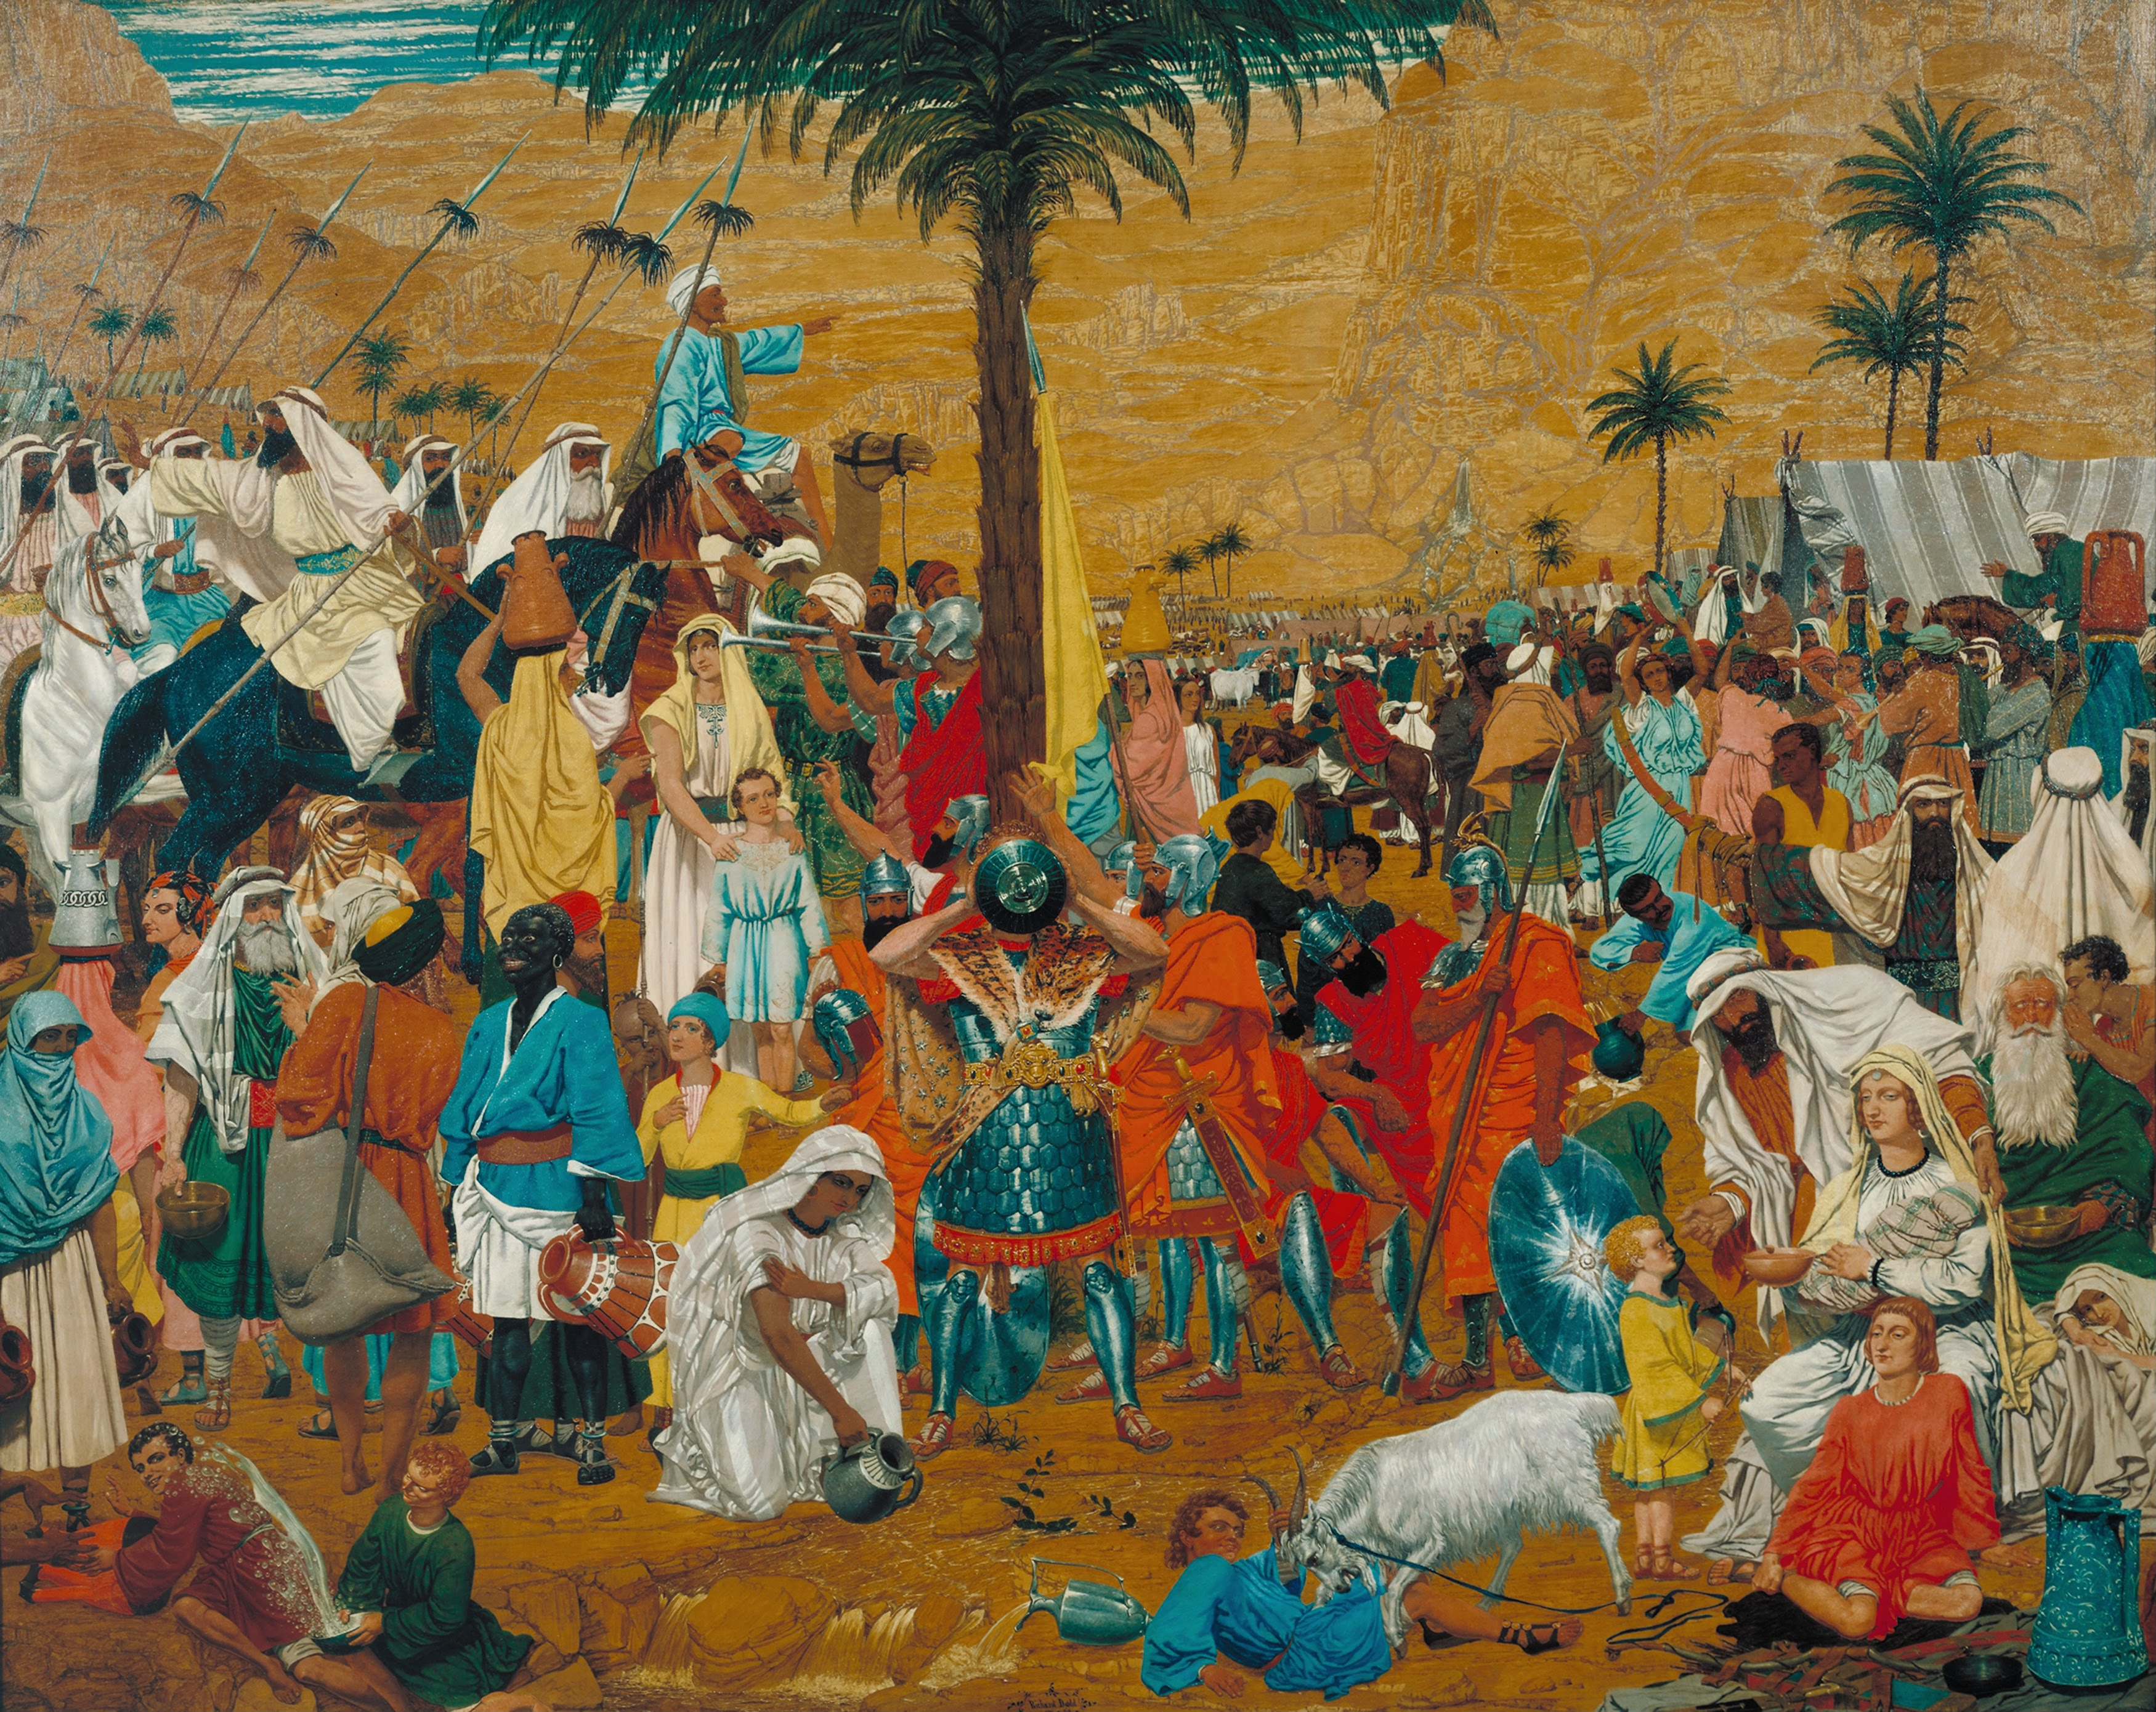 http://upload.wikimedia.org/wikipedia/commons/b/bb/Richard_Dadd_-_The_Flight_out_of_Egypt_-_Google_Art_Project.jpg